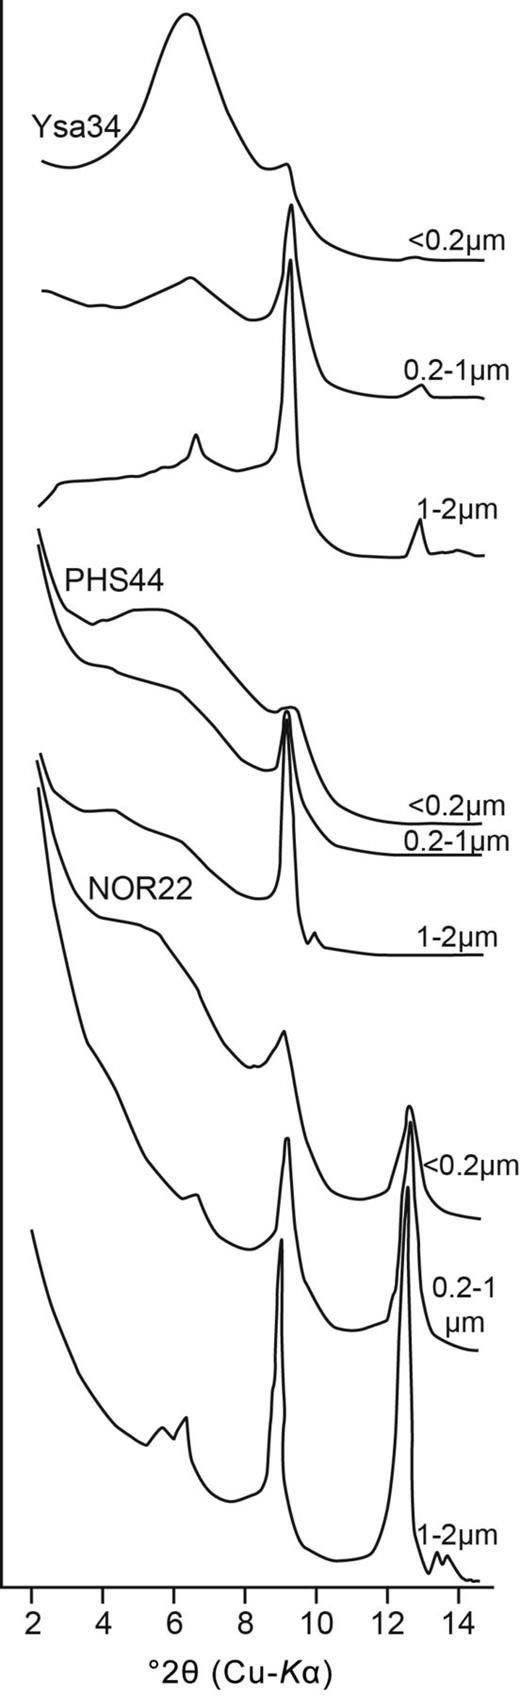 XRD patterns of the 400°C heated <0.2 μm e.s.d., 0.2–1 μm e.s.d. and 1–2 μm e.s.d. fractions showing typical degrees of collapse of the smectite peaks in relation to grain size exhibited by most samples in this study.